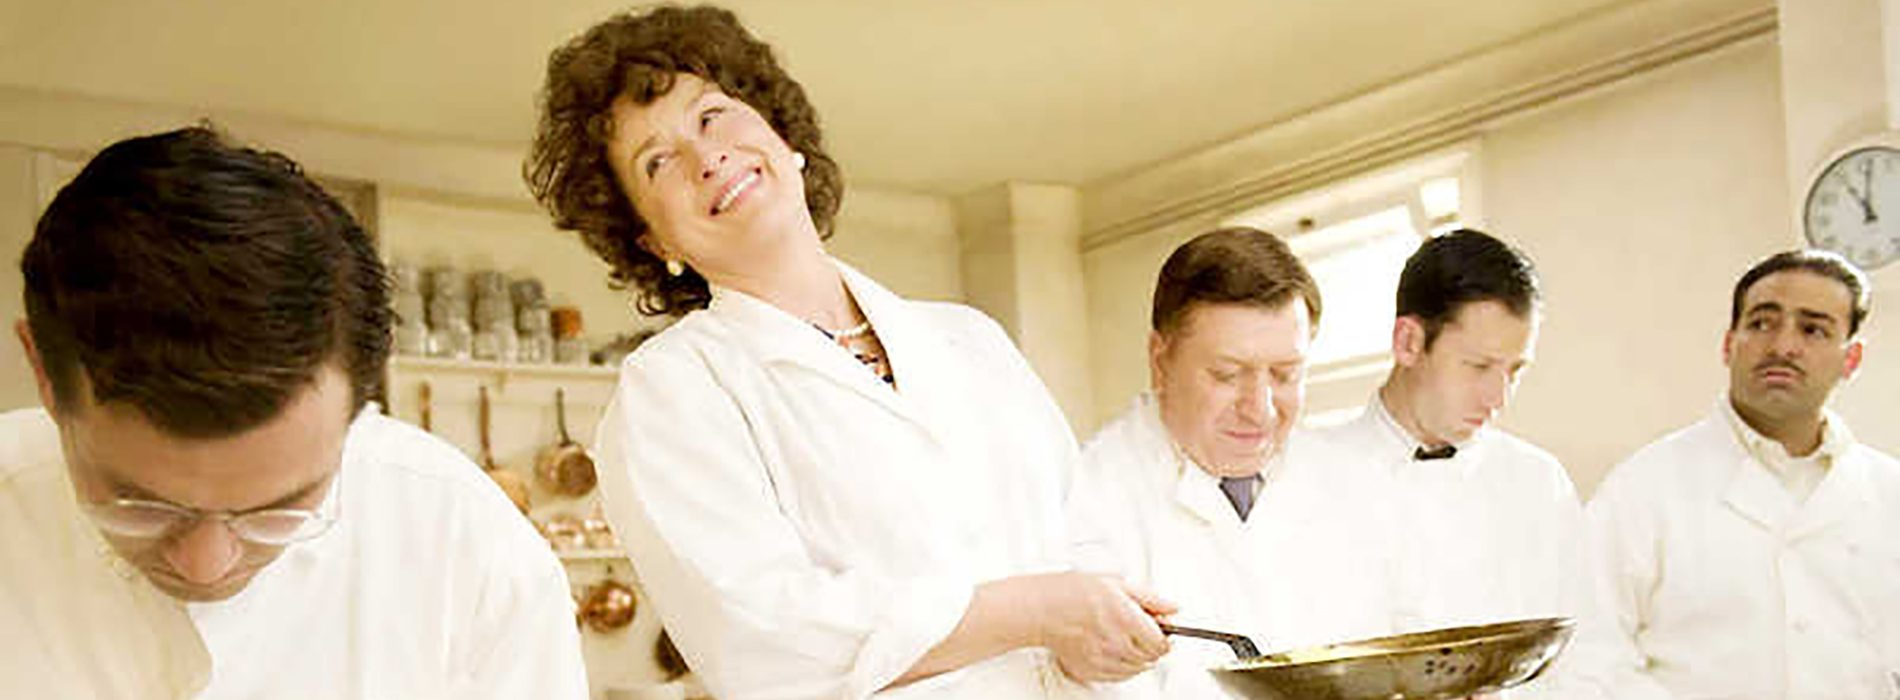 Image Meryl Streep in the film Julie and Julia